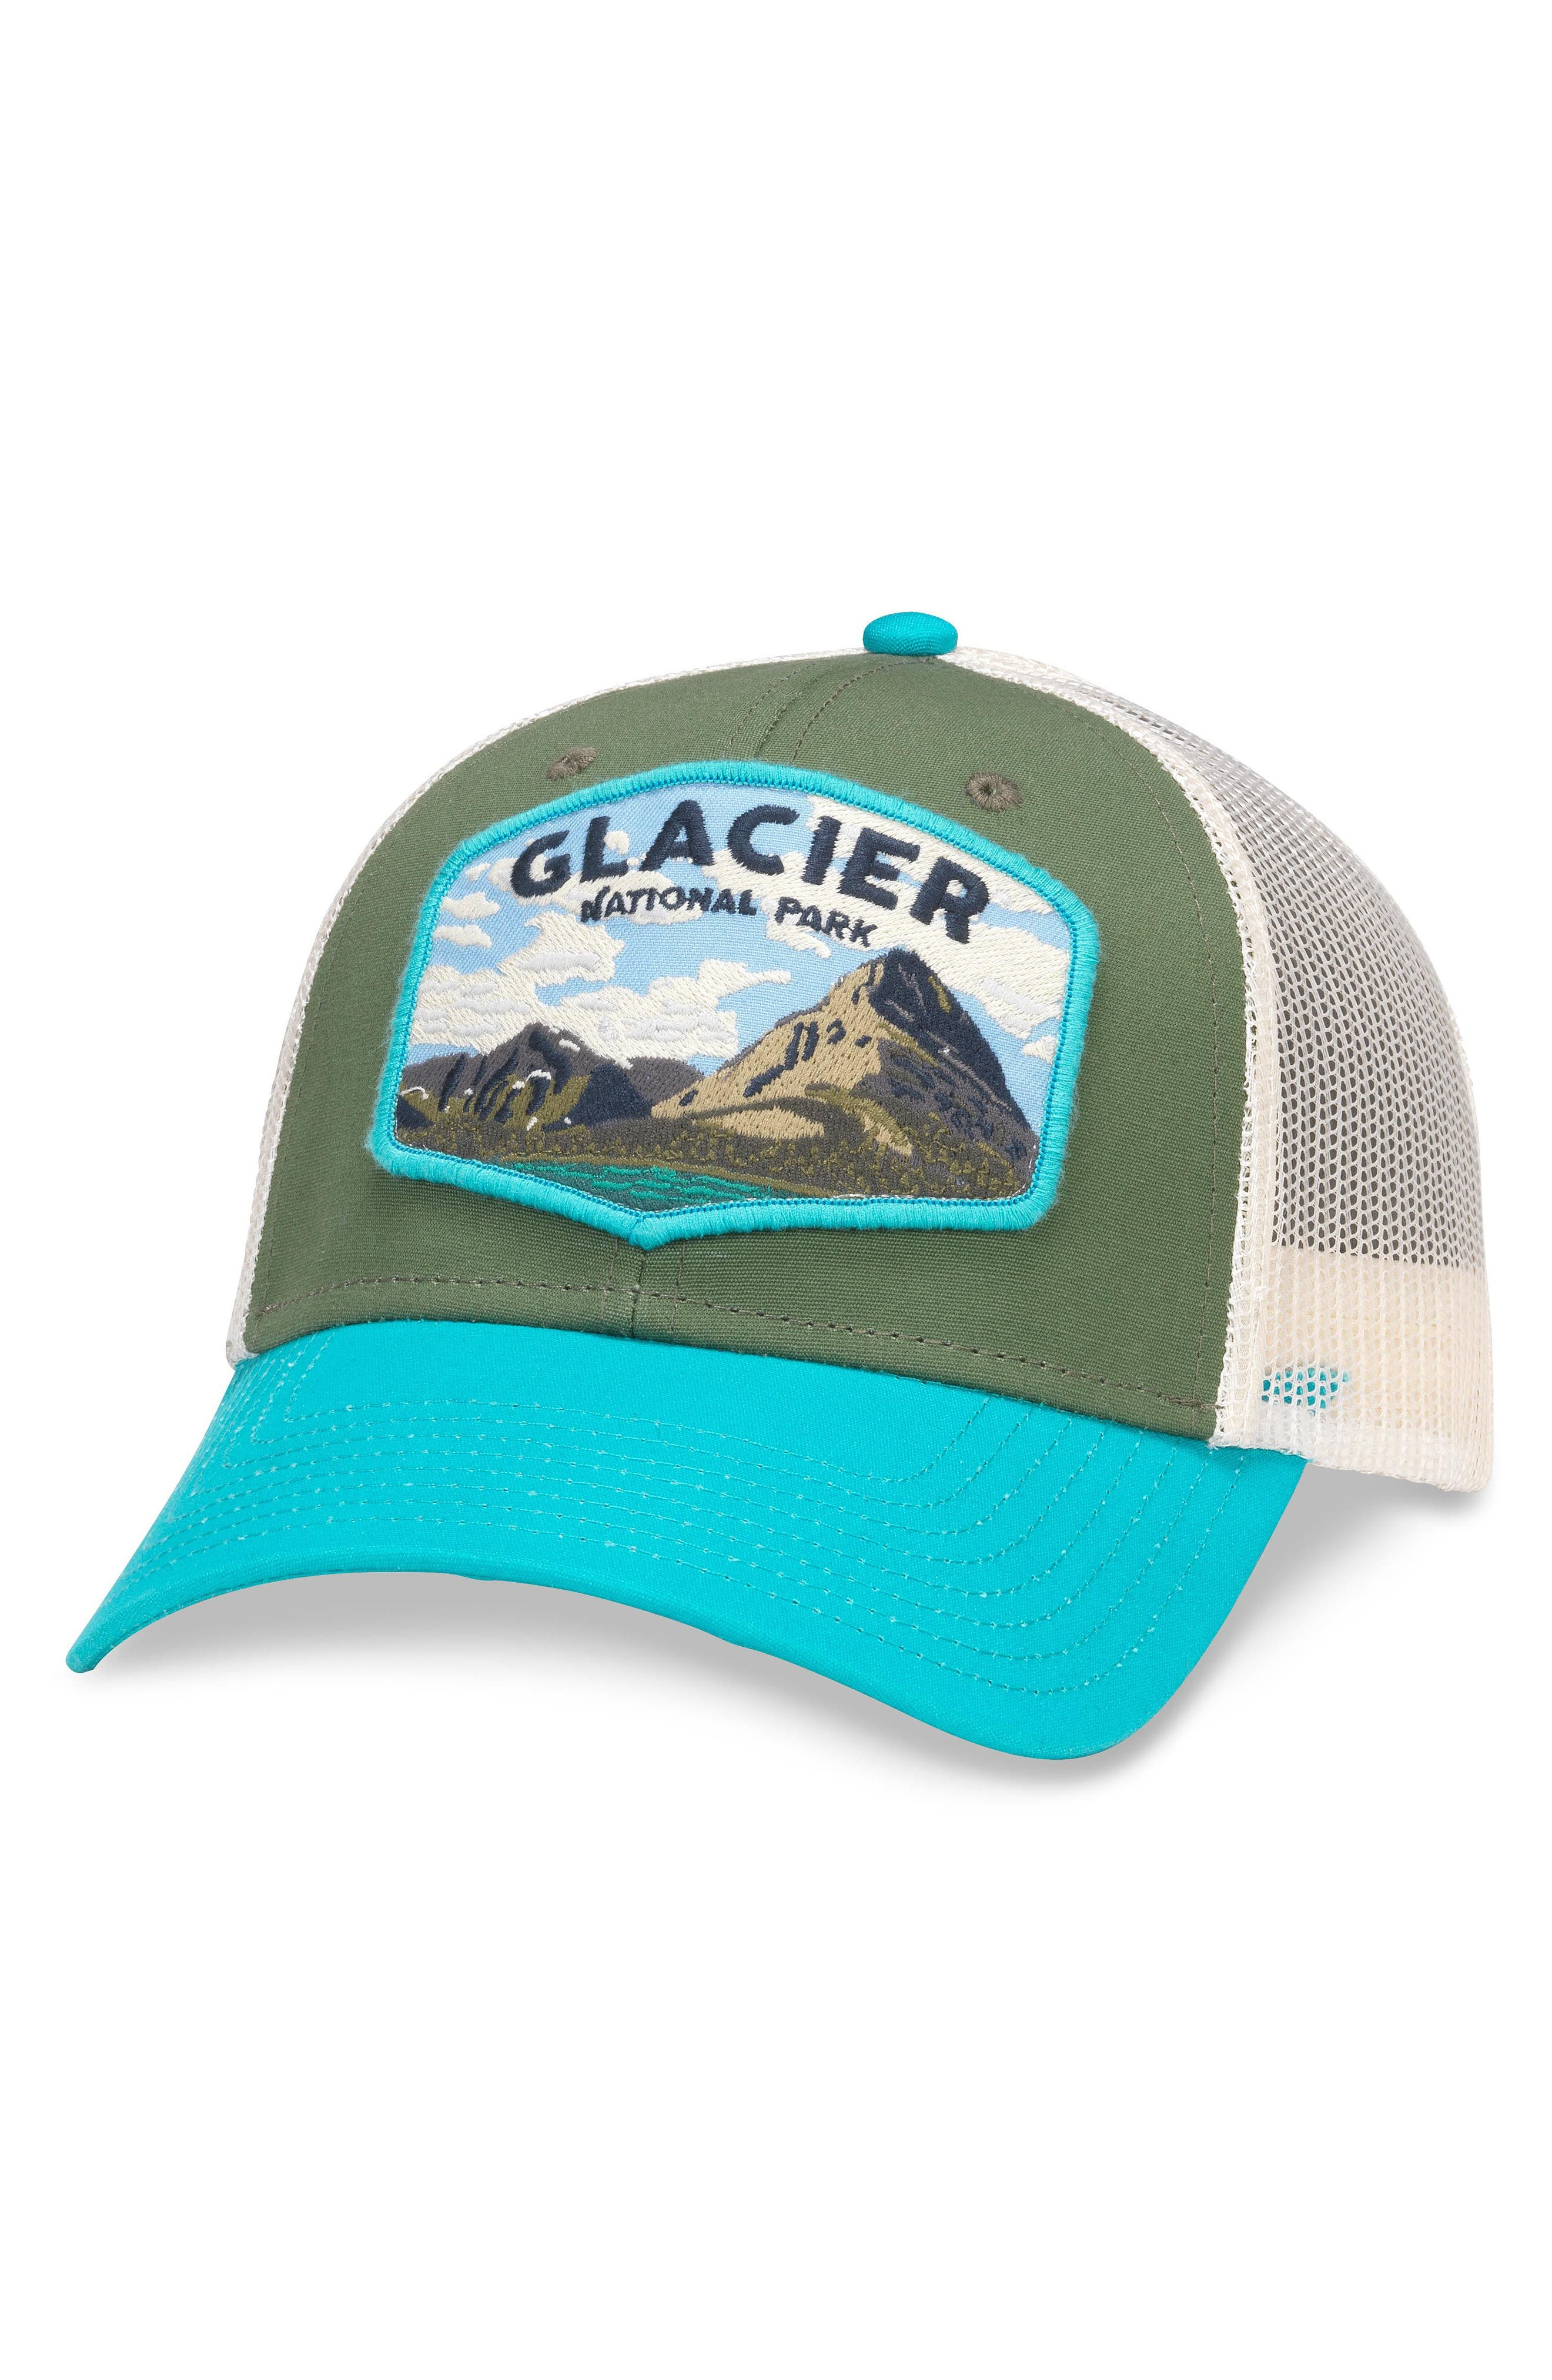 Barley 2 National Park Trucker Cap,                             Main thumbnail 1, color,                             900